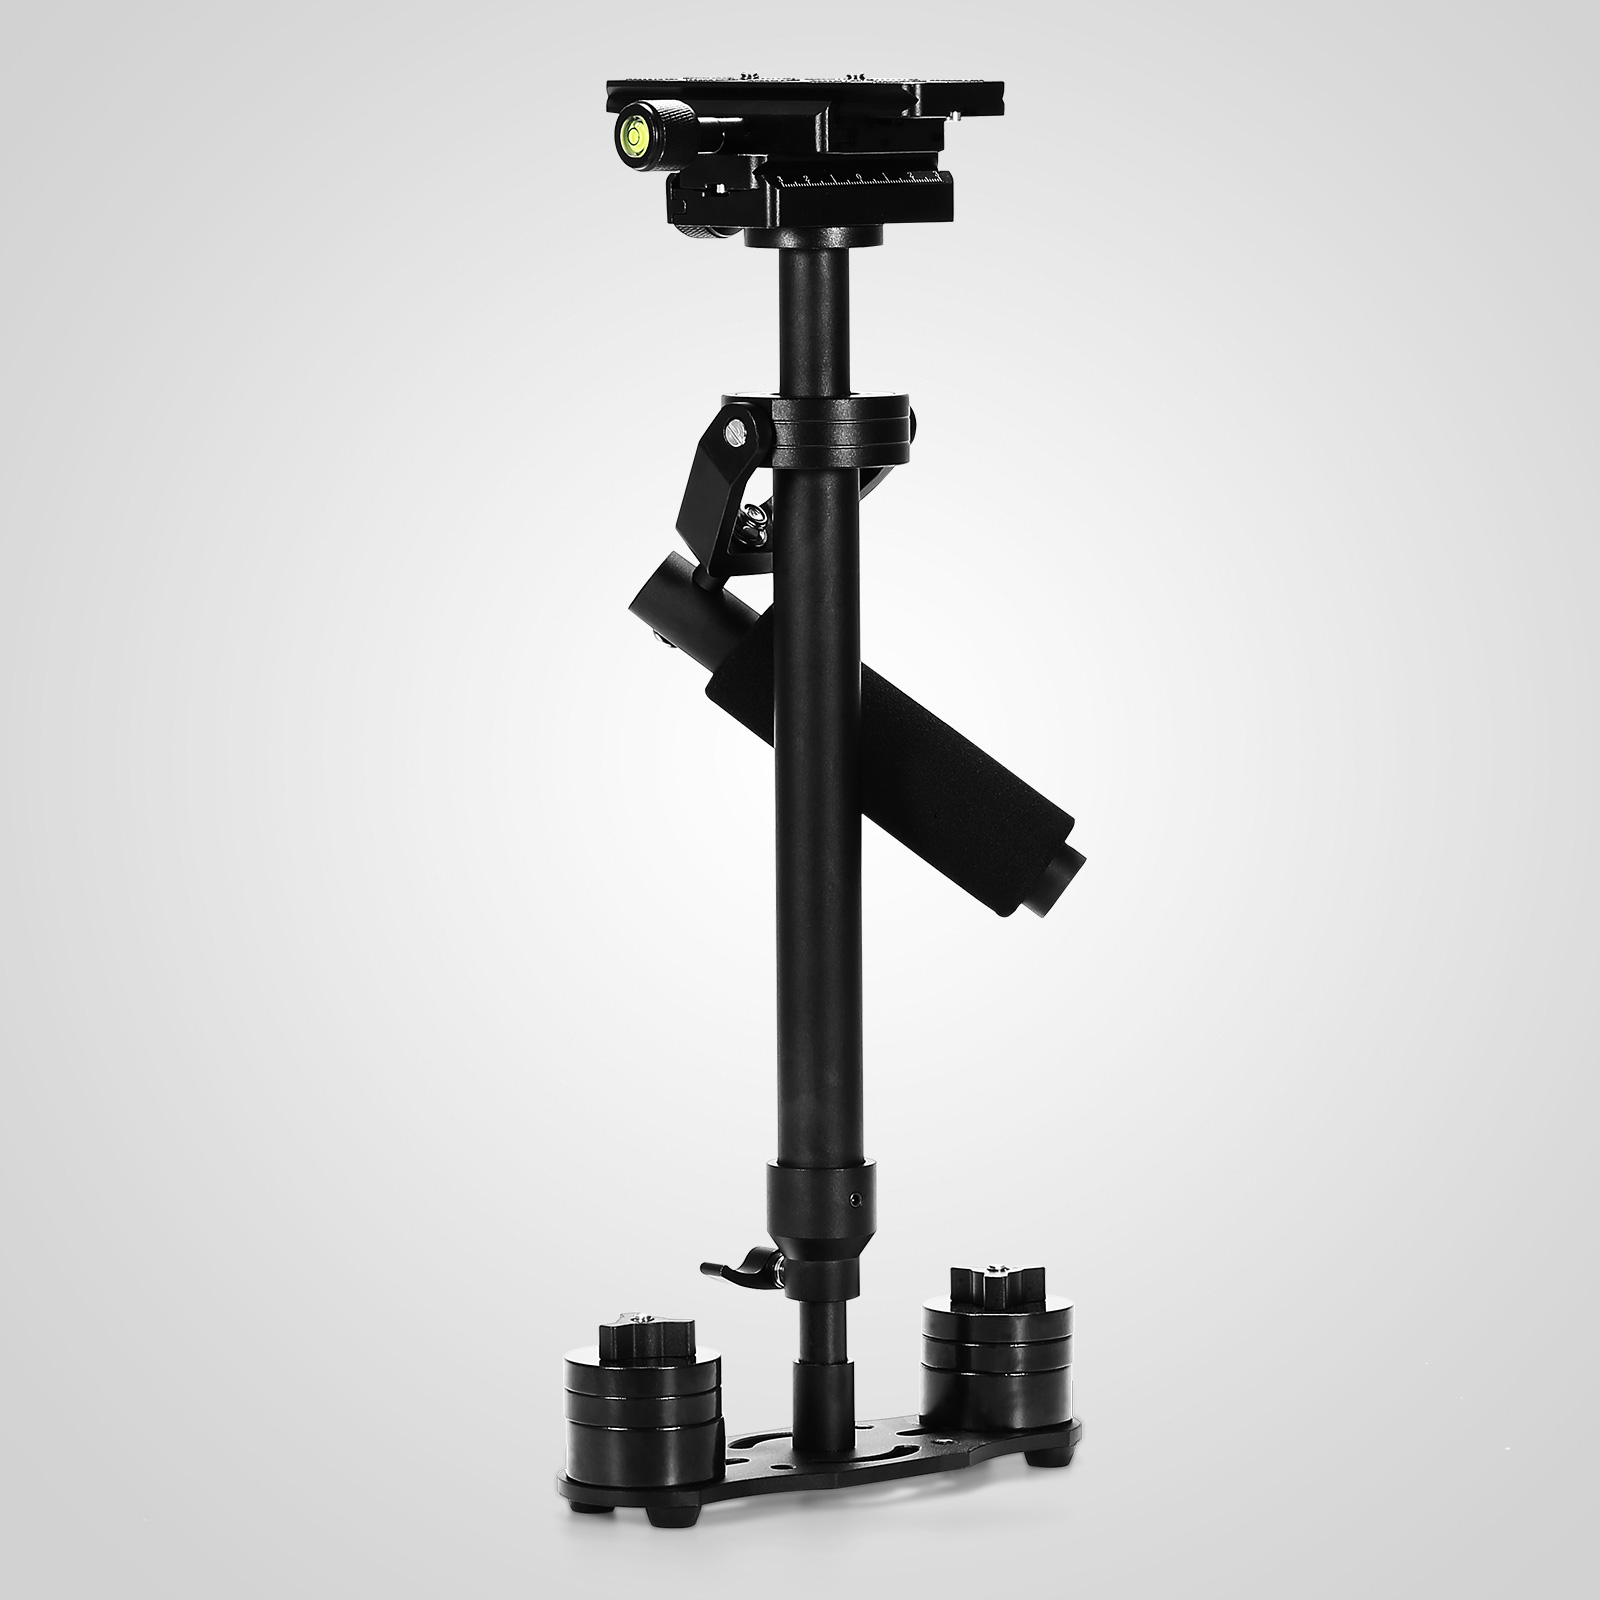 S60T-S60N-Handheld-Steady-Stabilizer-360-For-DSLR-Canon-Camera thumbnail 16